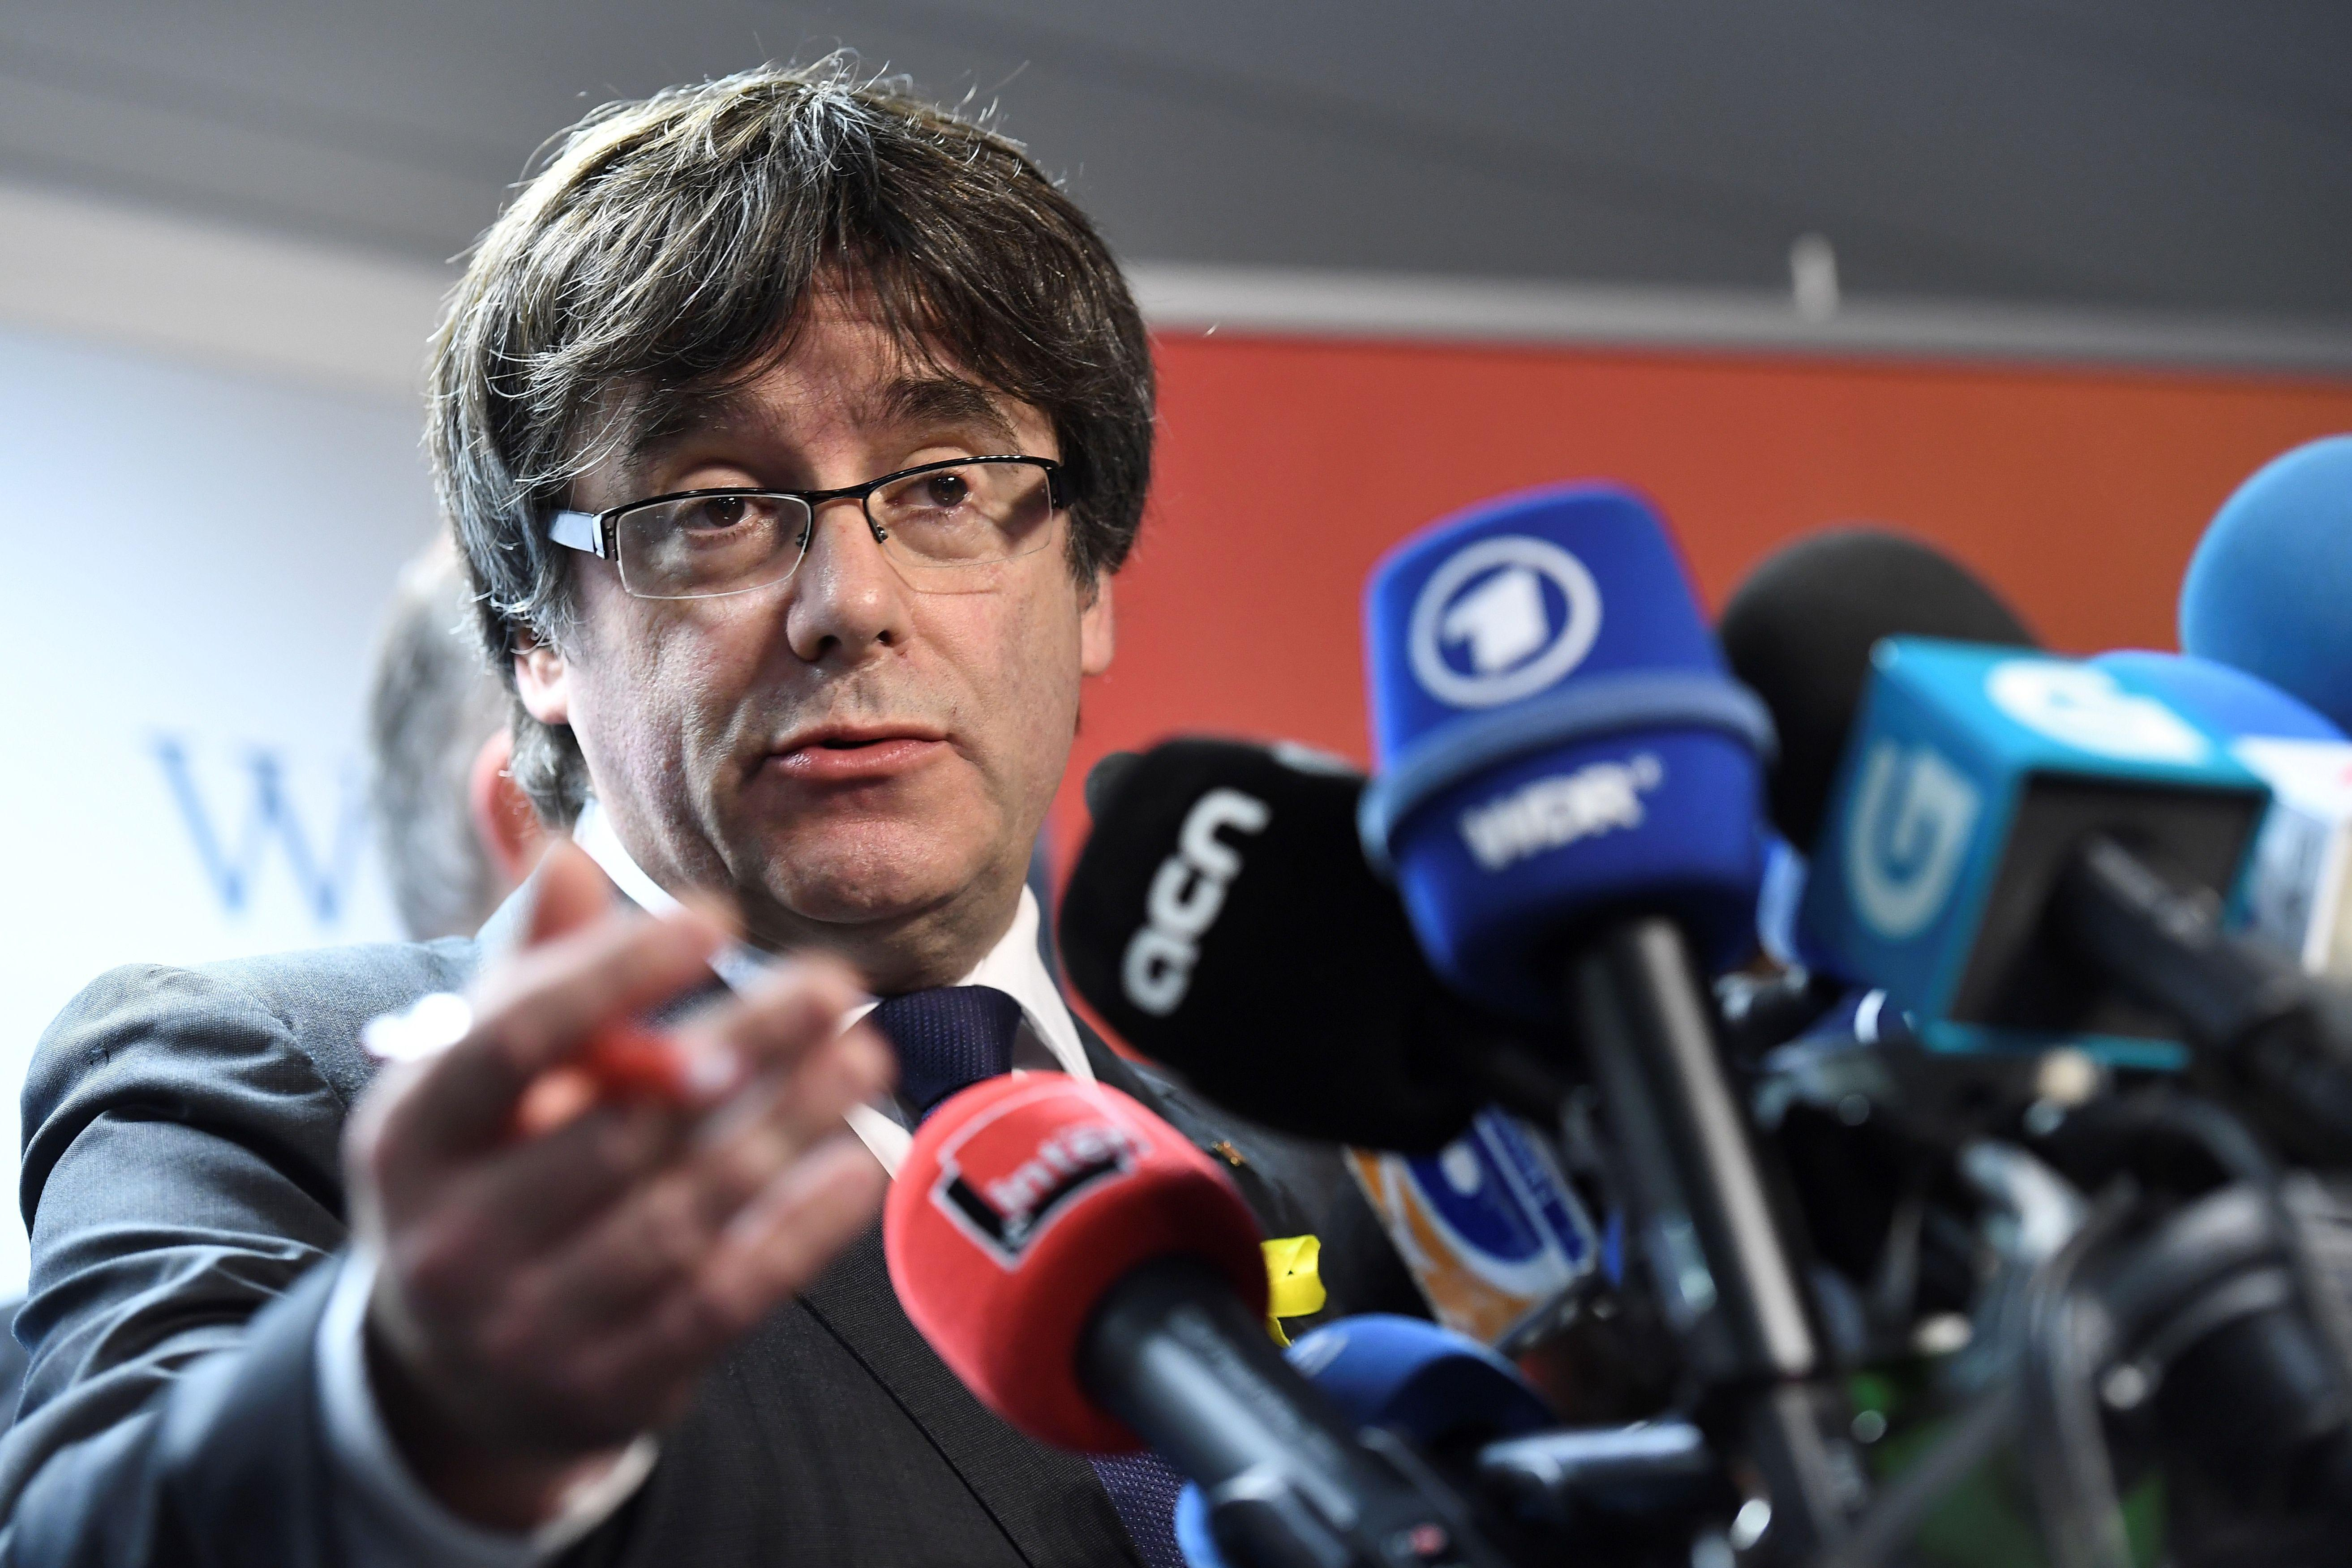 Axed Catalan president Carles Puigdemont gives a press conference on December 22, 2017 in Brussels, a day after the Catalonia's regional election.          Catalans flooded to the polls in a crucial election that could mark a turning point for their region, just two months after a failed secession bid triggered Spain's worst political crisis in decades.  / AFP PHOTO / EMMANUEL DUNAND        (Photo credit should read EMMANUEL DUNAND/AFP/Getty Images)